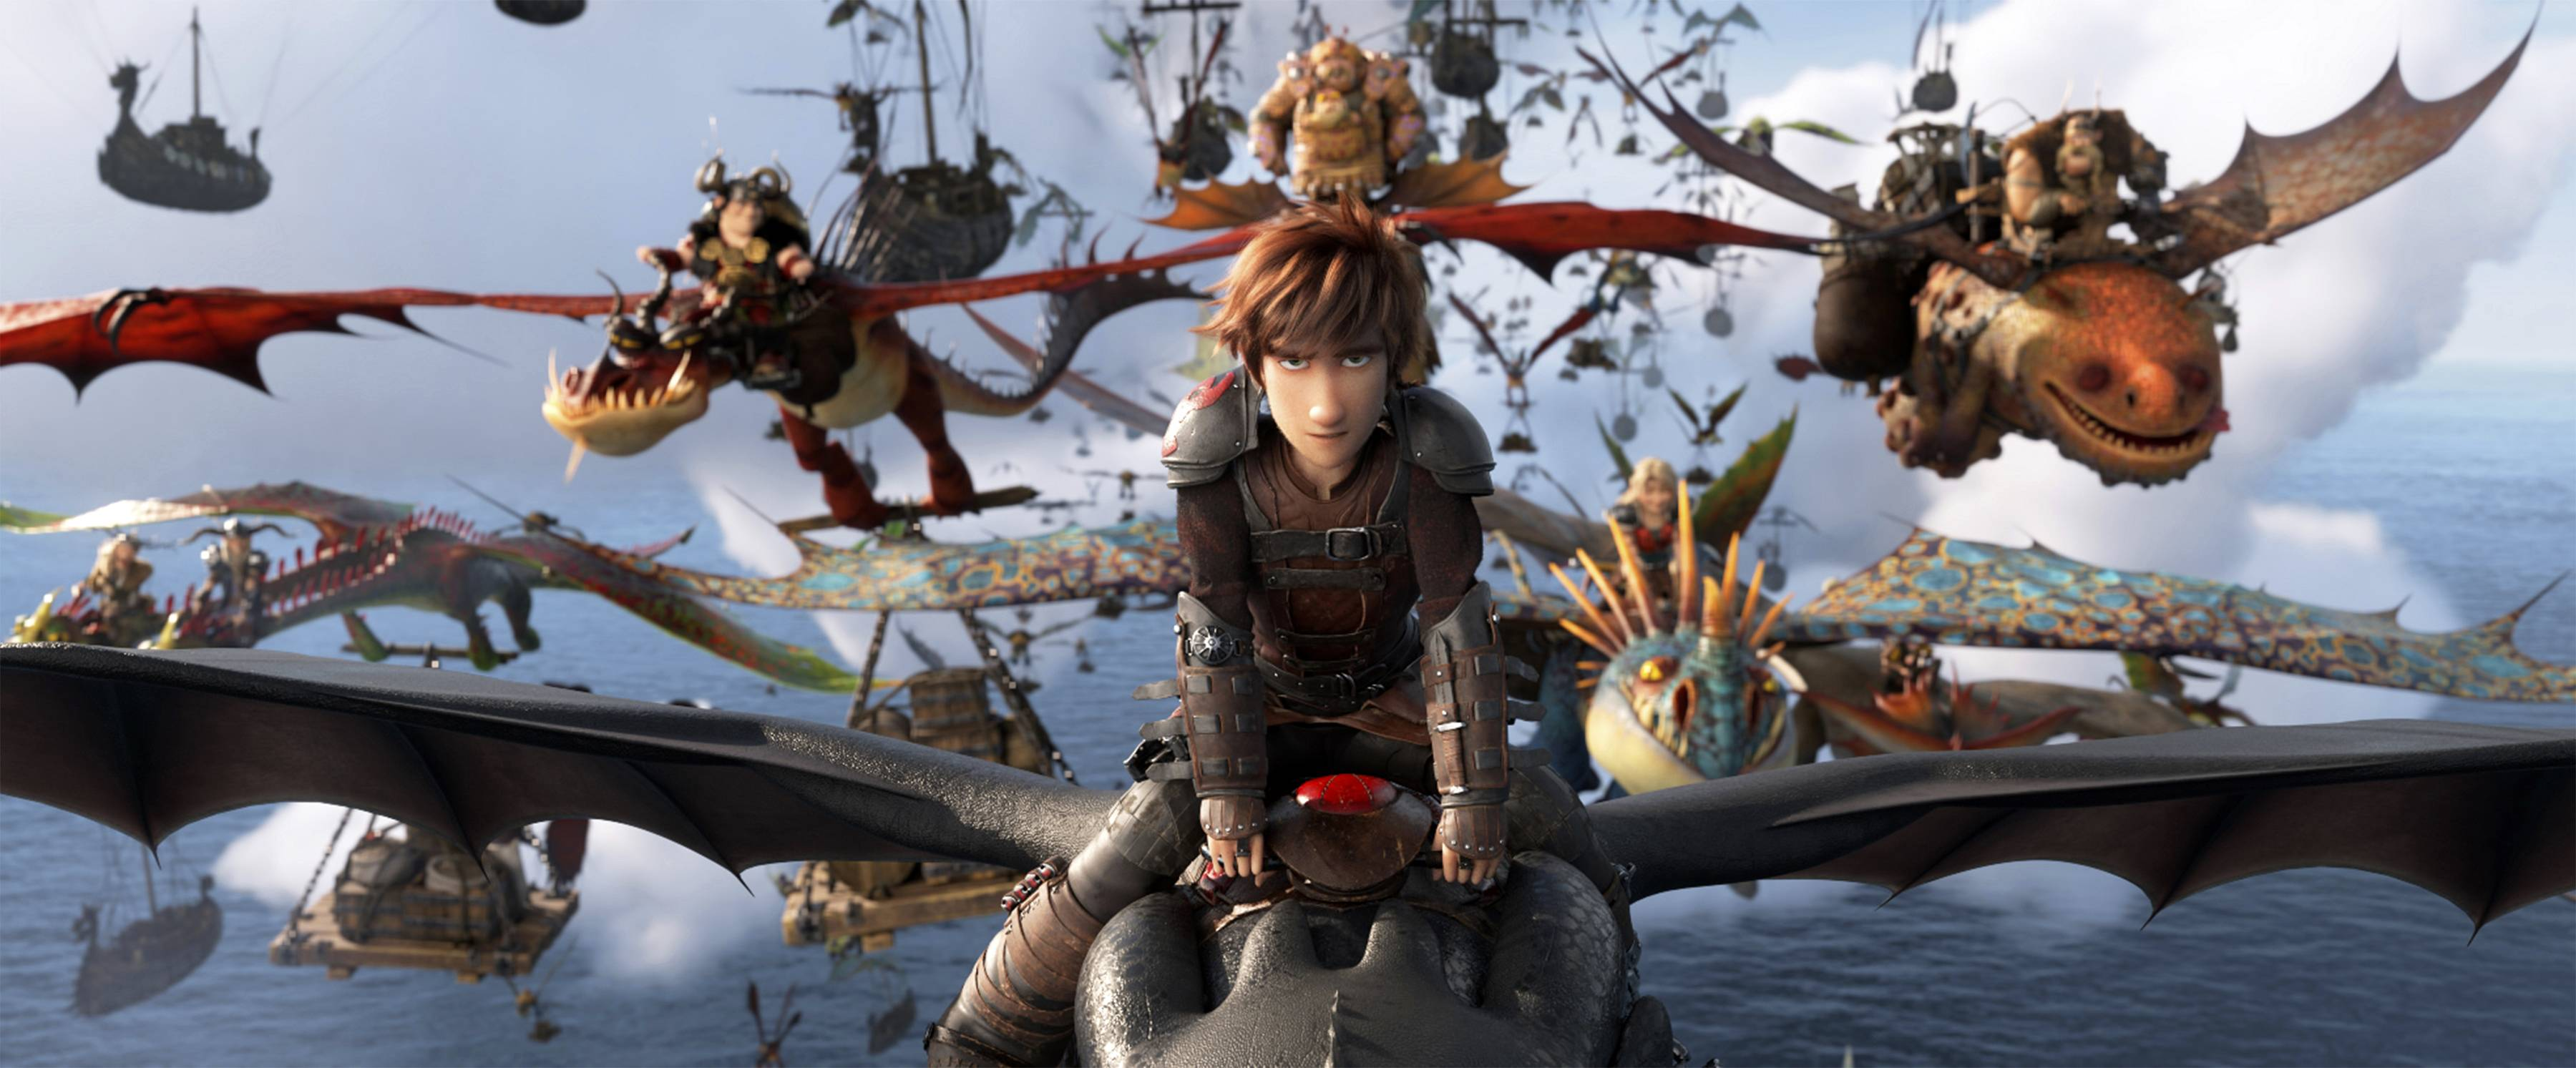 "Hiccup (voiced by Jay Baruchel) faces a new threat in ""How to Train Your Dragon: The Hidden World."""